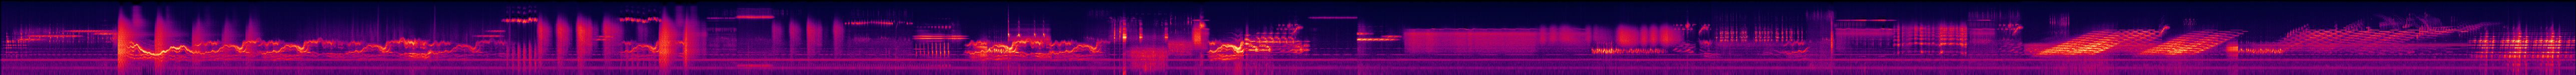 Circle of Light - Spectrogram.jpg